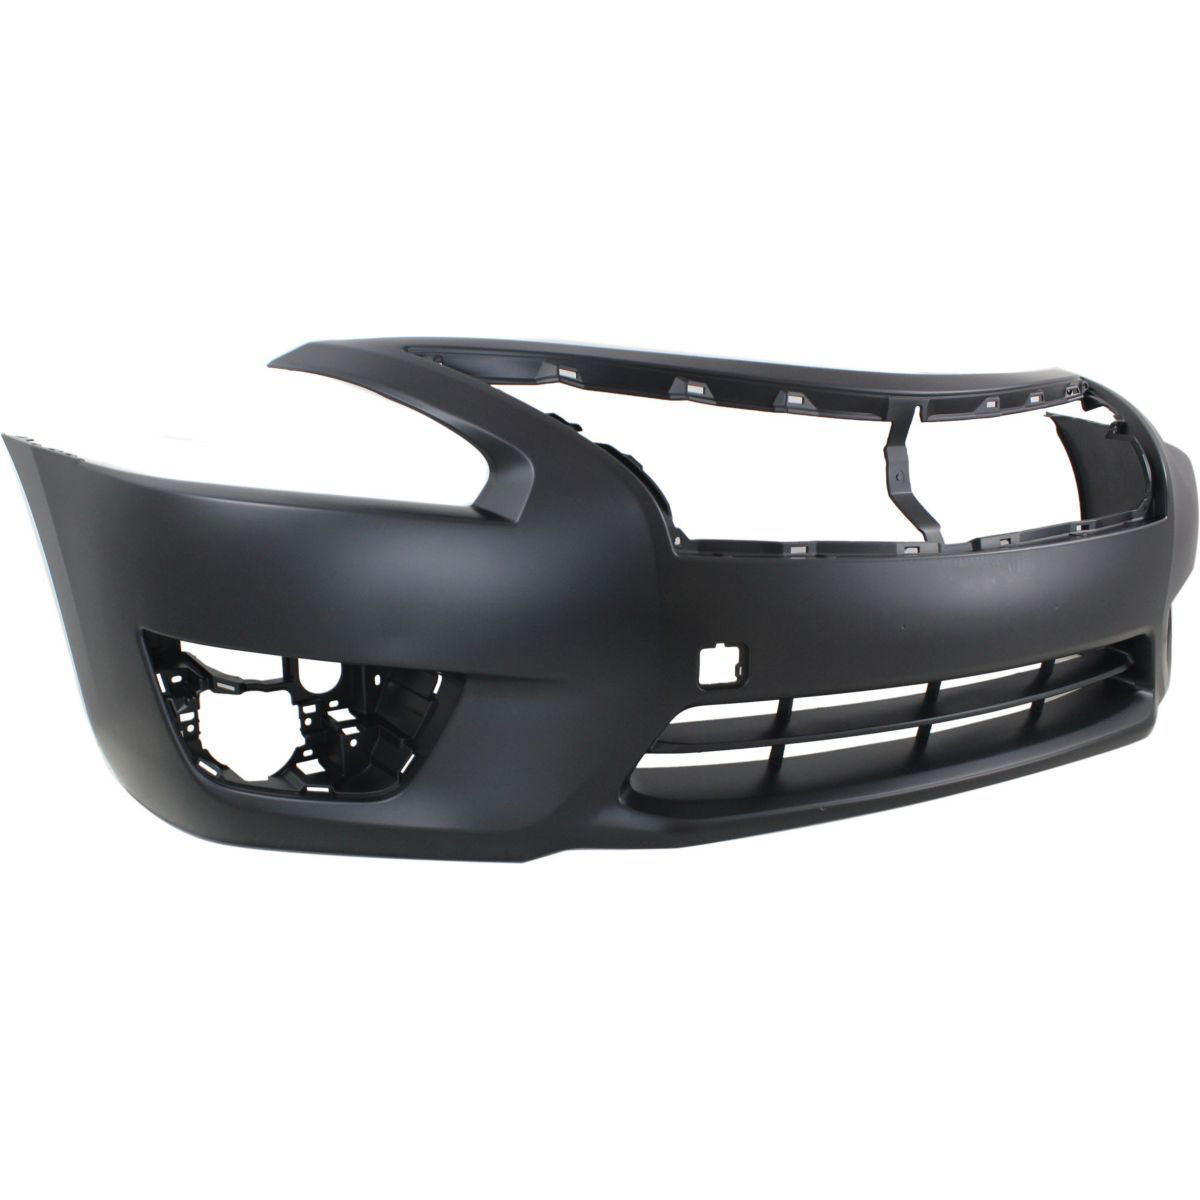 2013-2015 NISSAN ALTIMA Front Bumper Cover Sedan Painted to Match